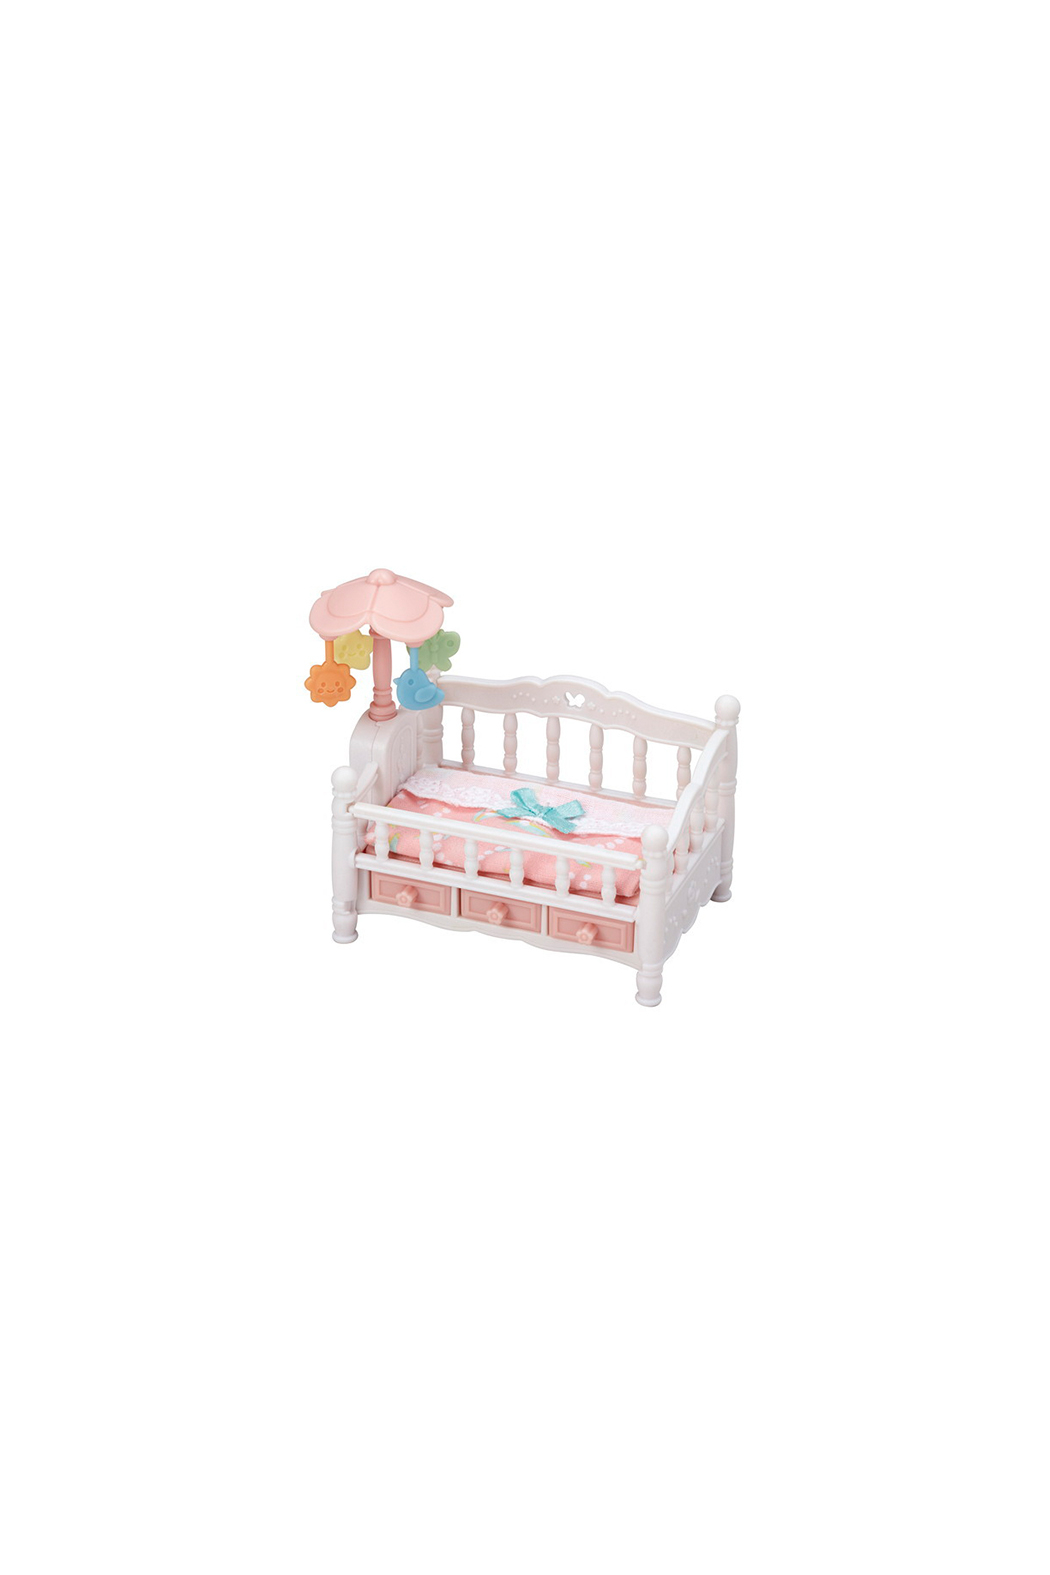 Calico Critters Crib With Mobile - Main Image